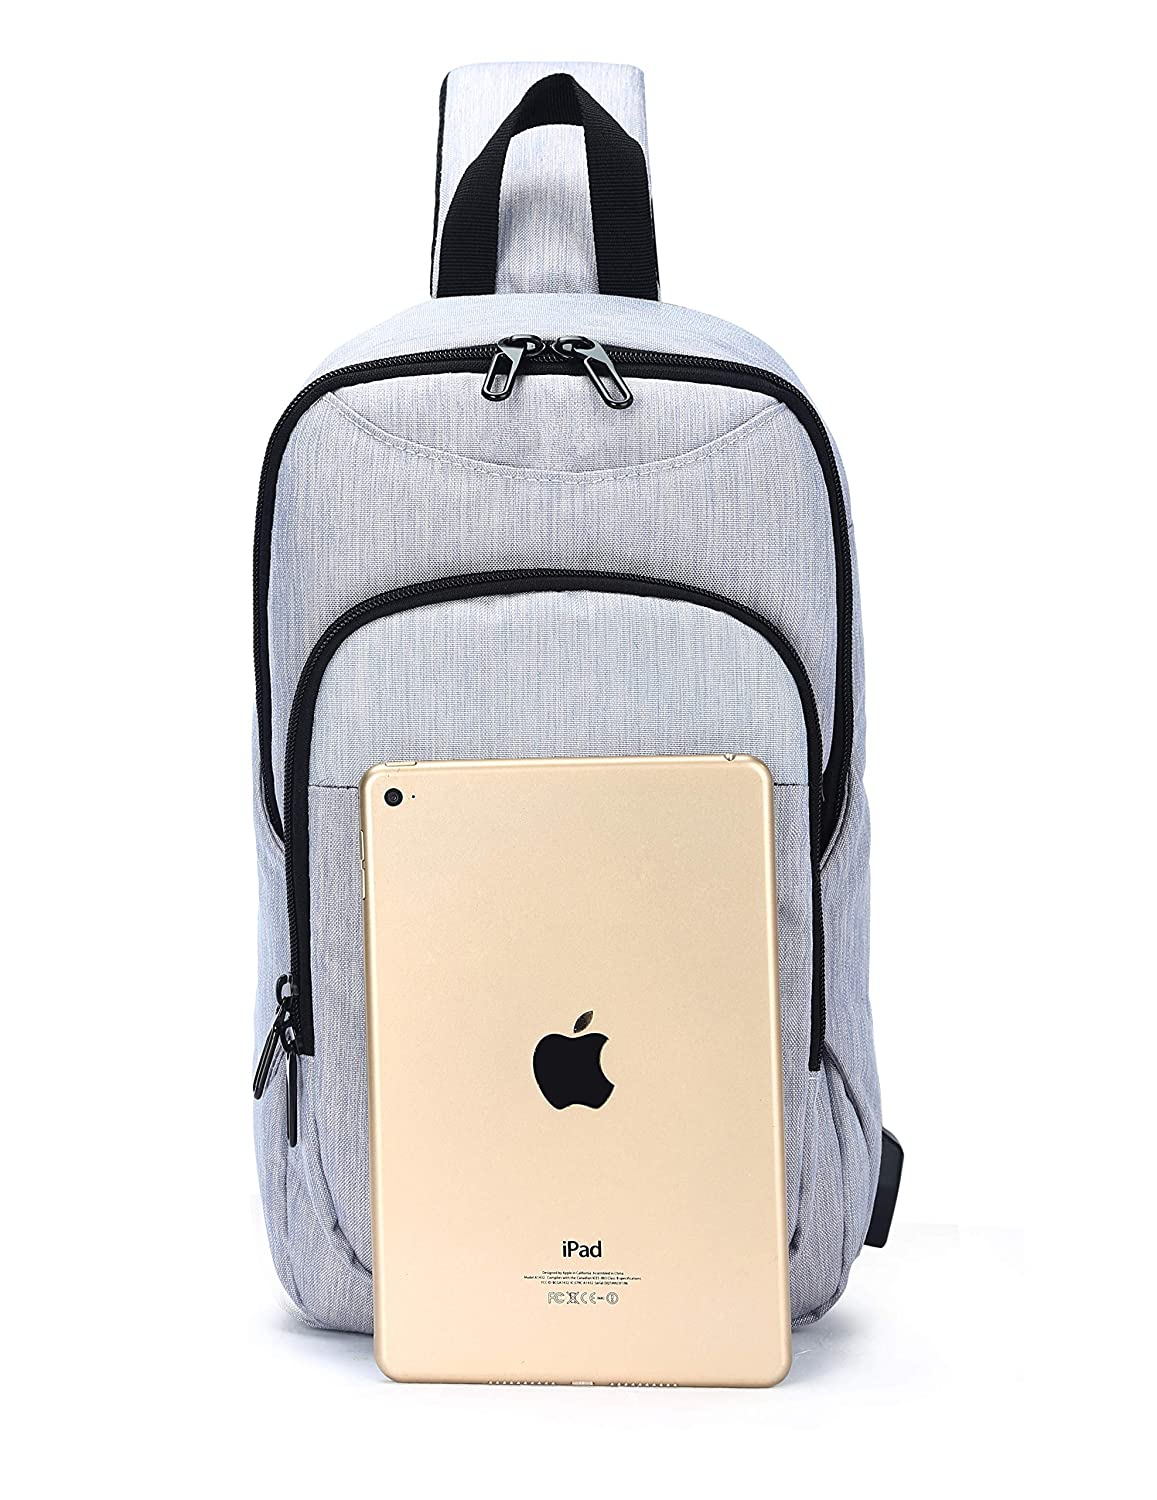 Yeasumoe Sling Bag Small Chest Shoulder Backpack Anti Theft Casual Daypack with USB Charging Port for Men Boys